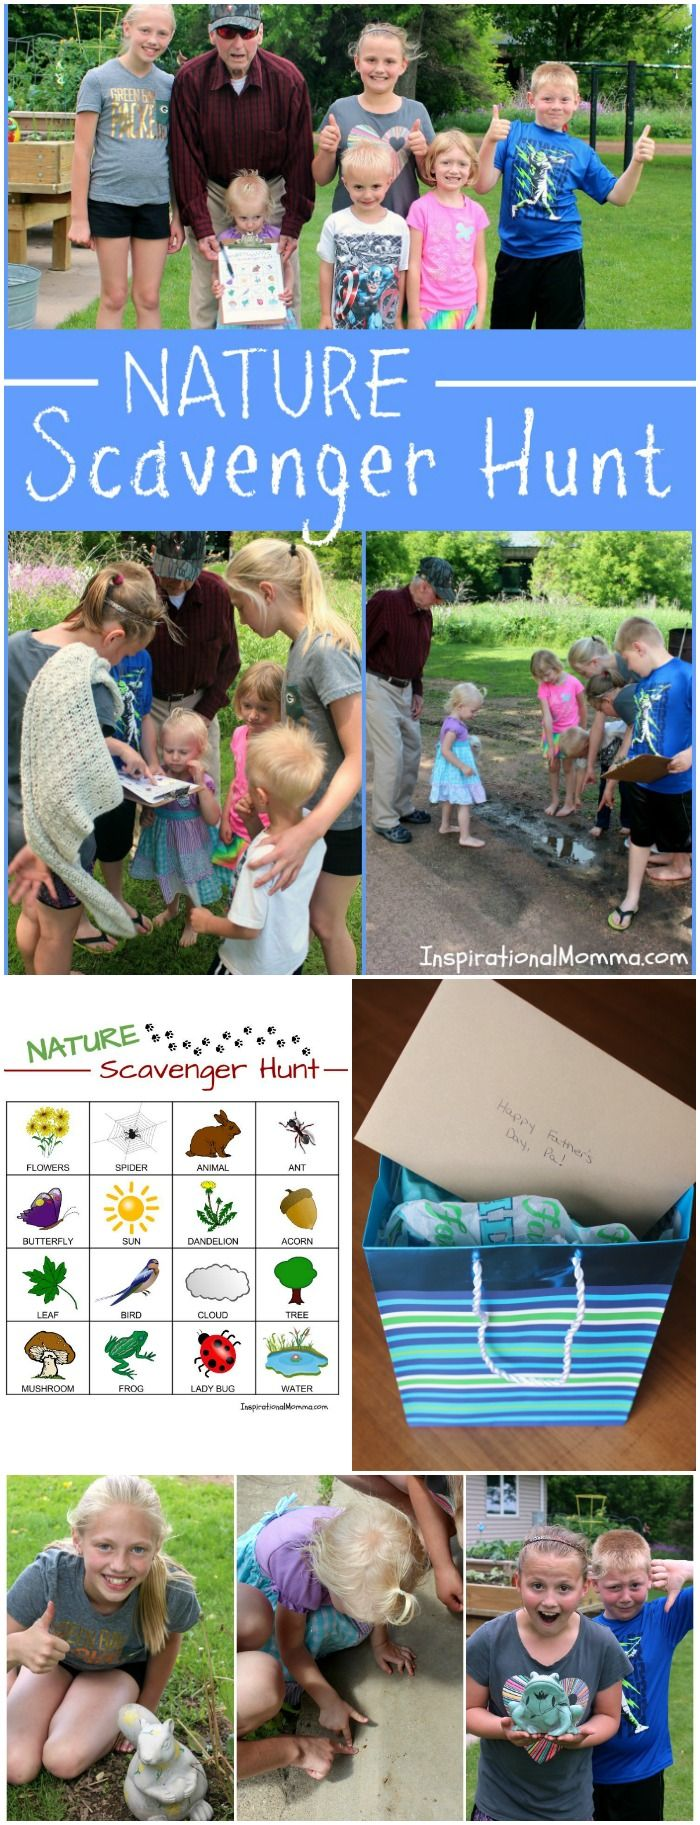 Its time for a Nature Scavenger Hunt. While searching for objects and critters, you will smile, giggle, and make many memories! Check out the free printable! #CelebrateAmazingDads # CollectiveBias #Ad #AmGreetings